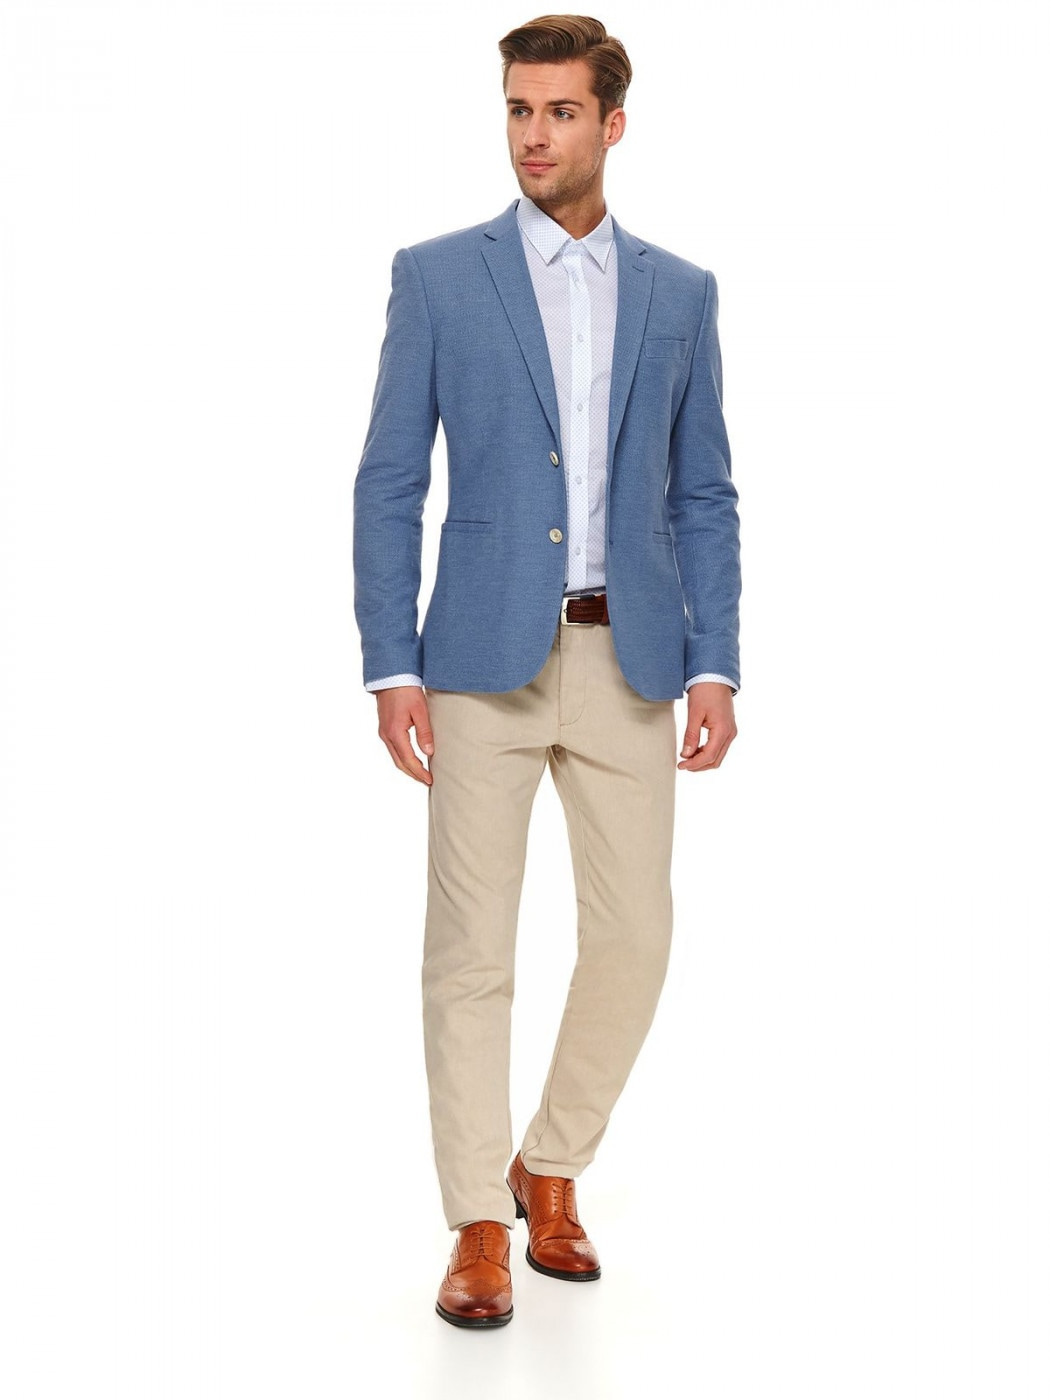 Men's blazer Top Secret Classic